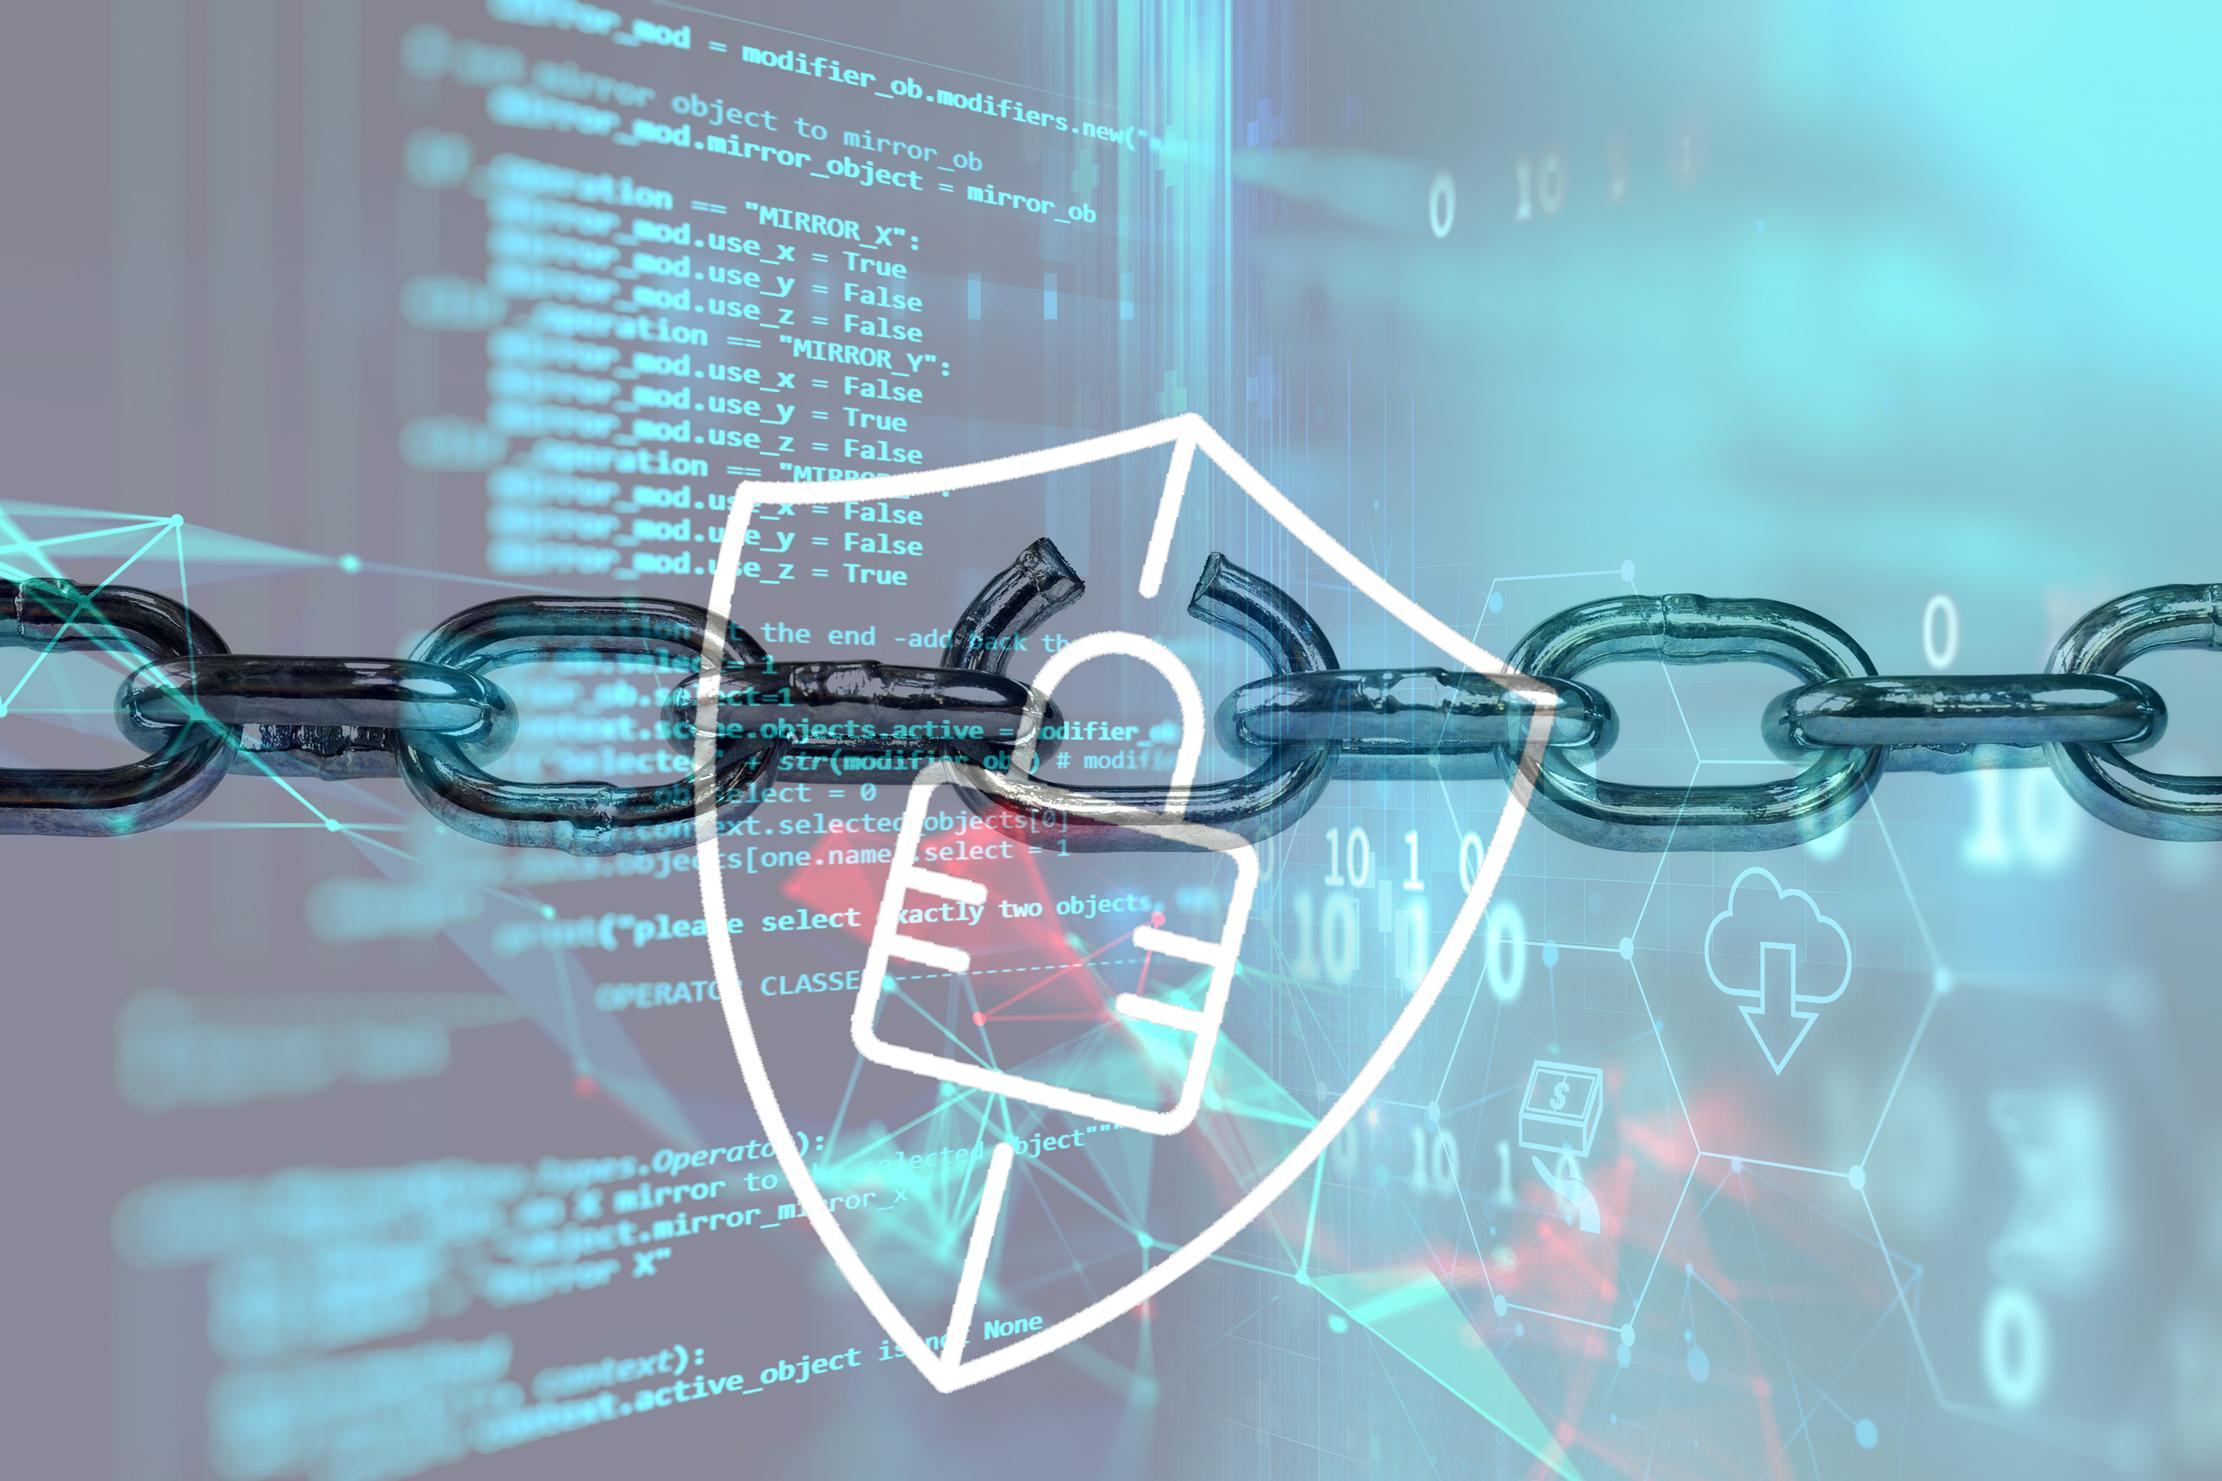 Don't let Big Data become the weakest link in the security chain